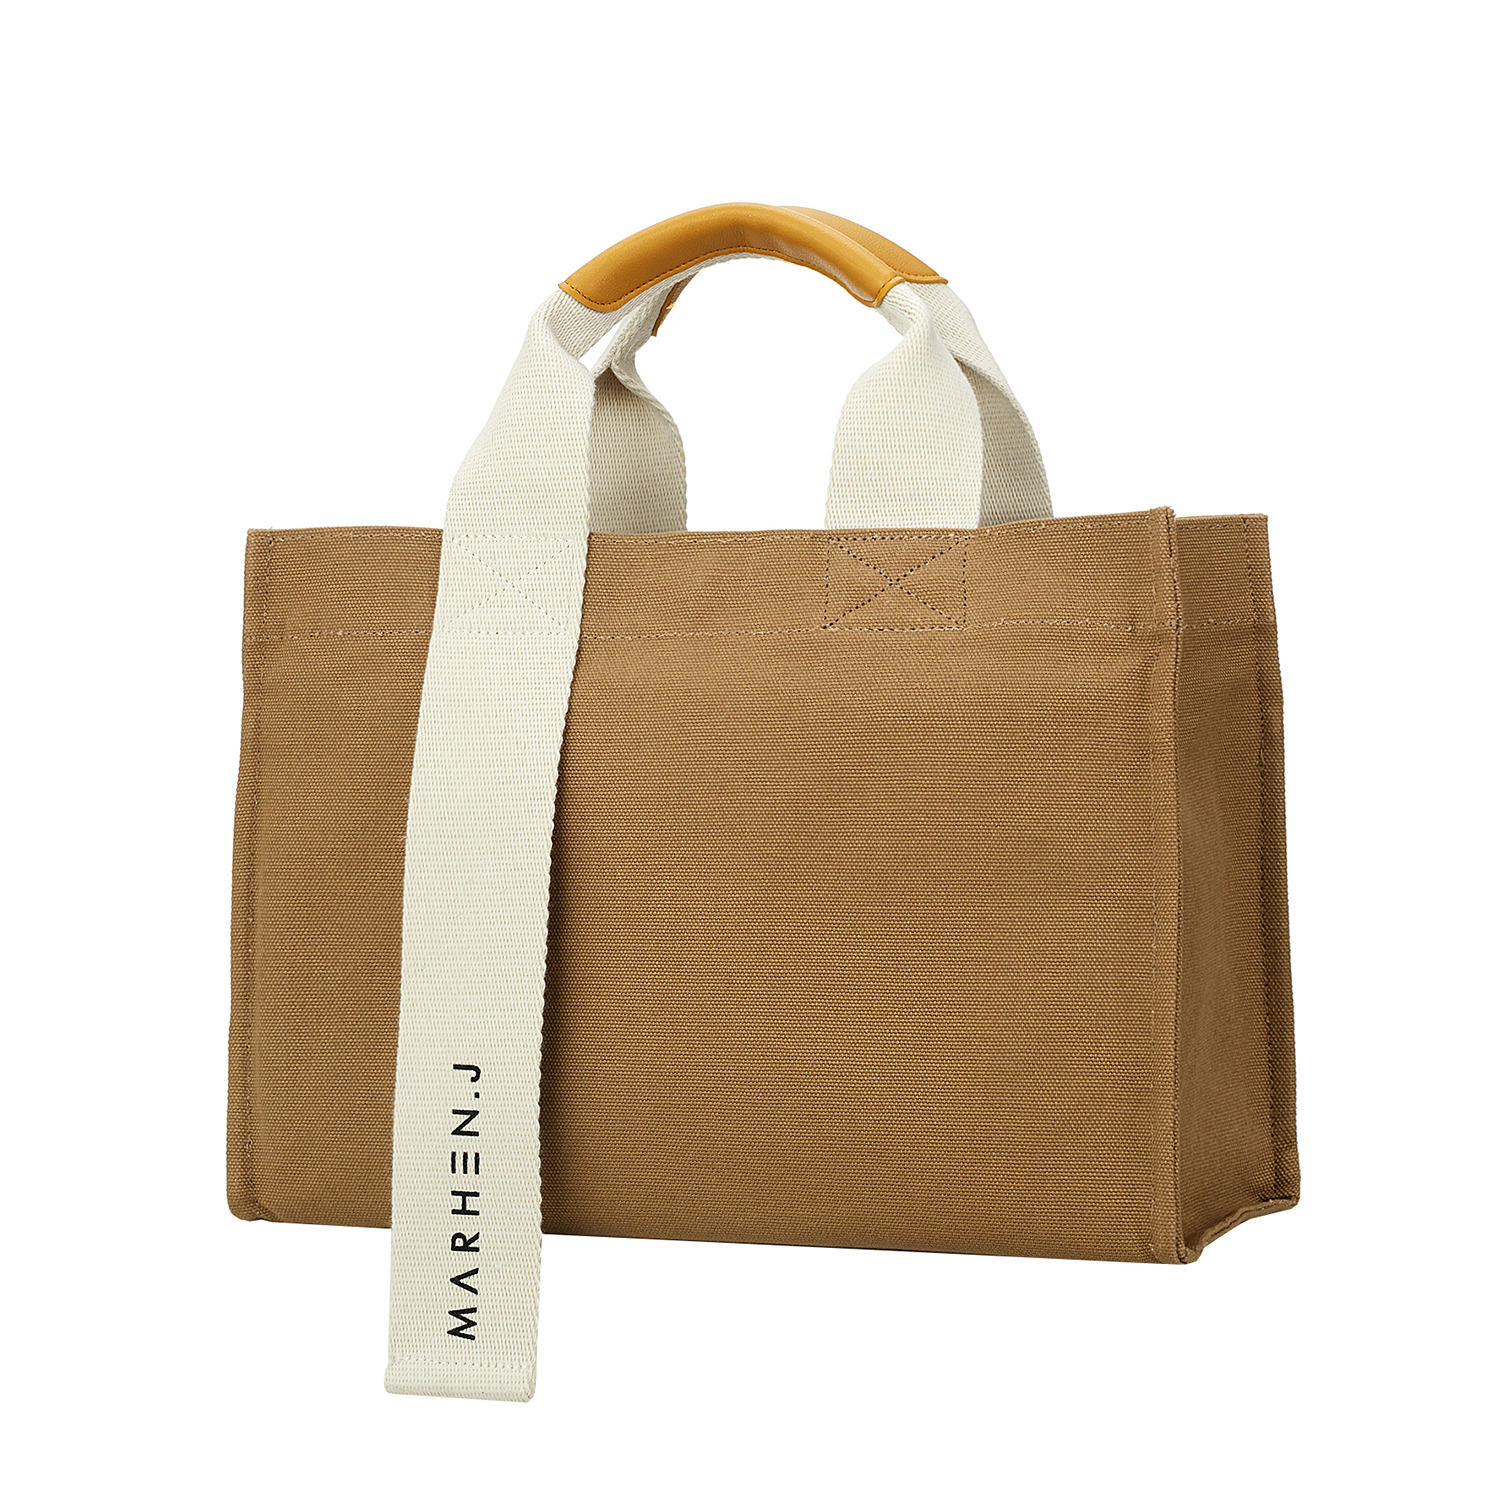 [3rd][30%OFF] Rico Bag II Sand Beige